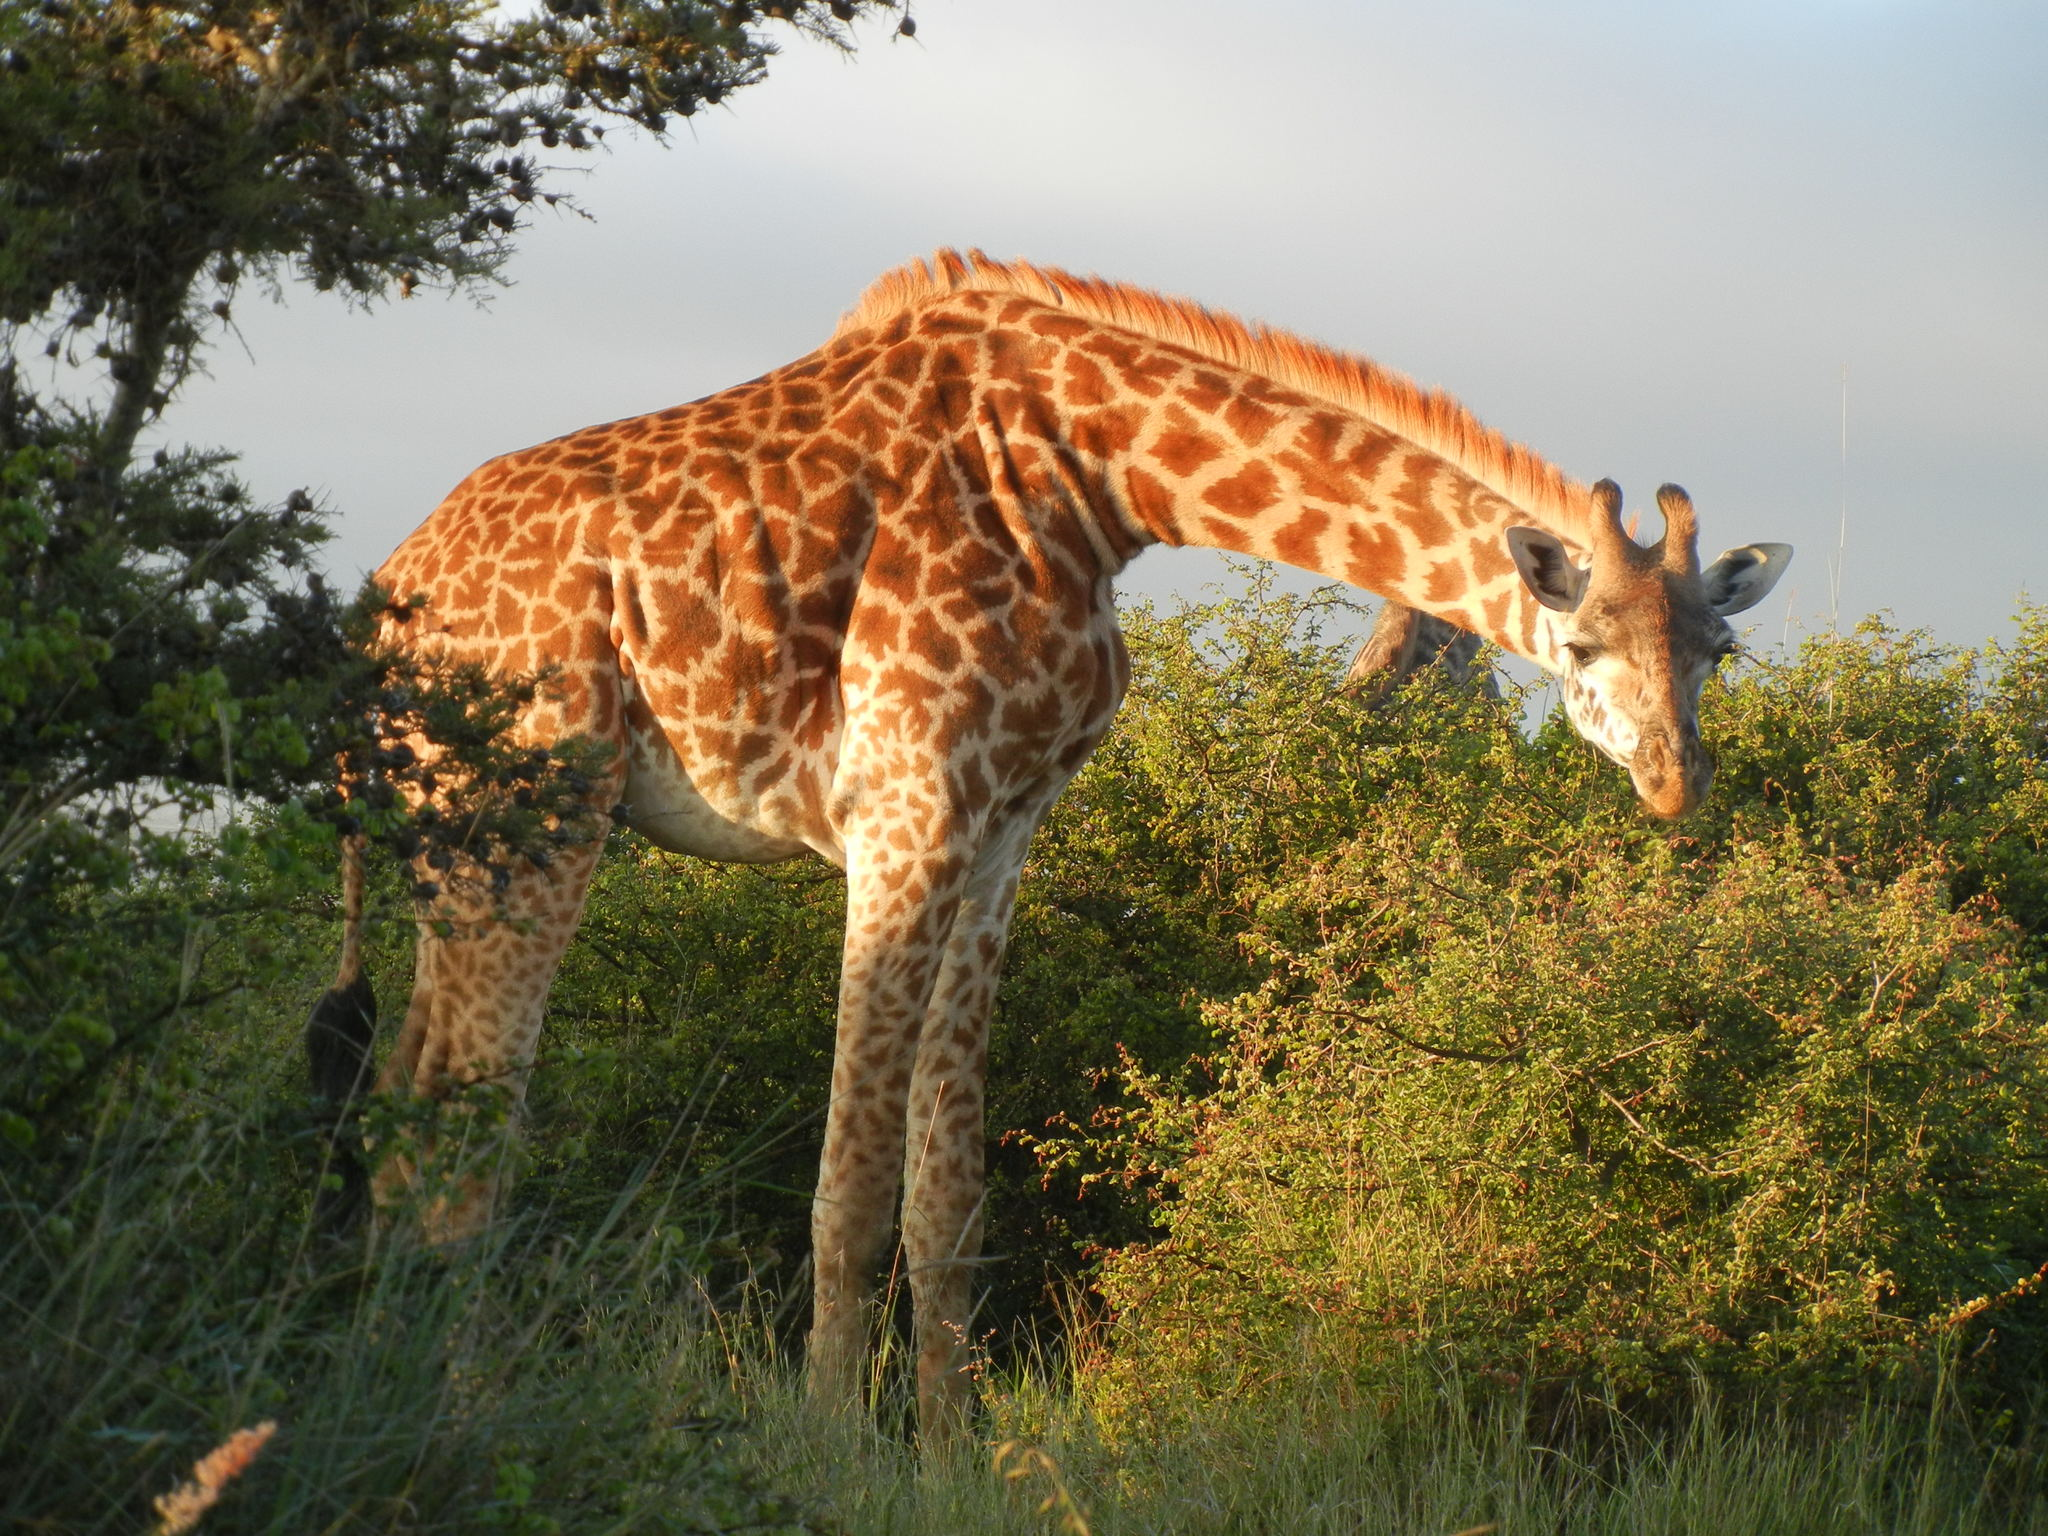 A giraffe browsing among trees in Nairobi National Park, Kenya.